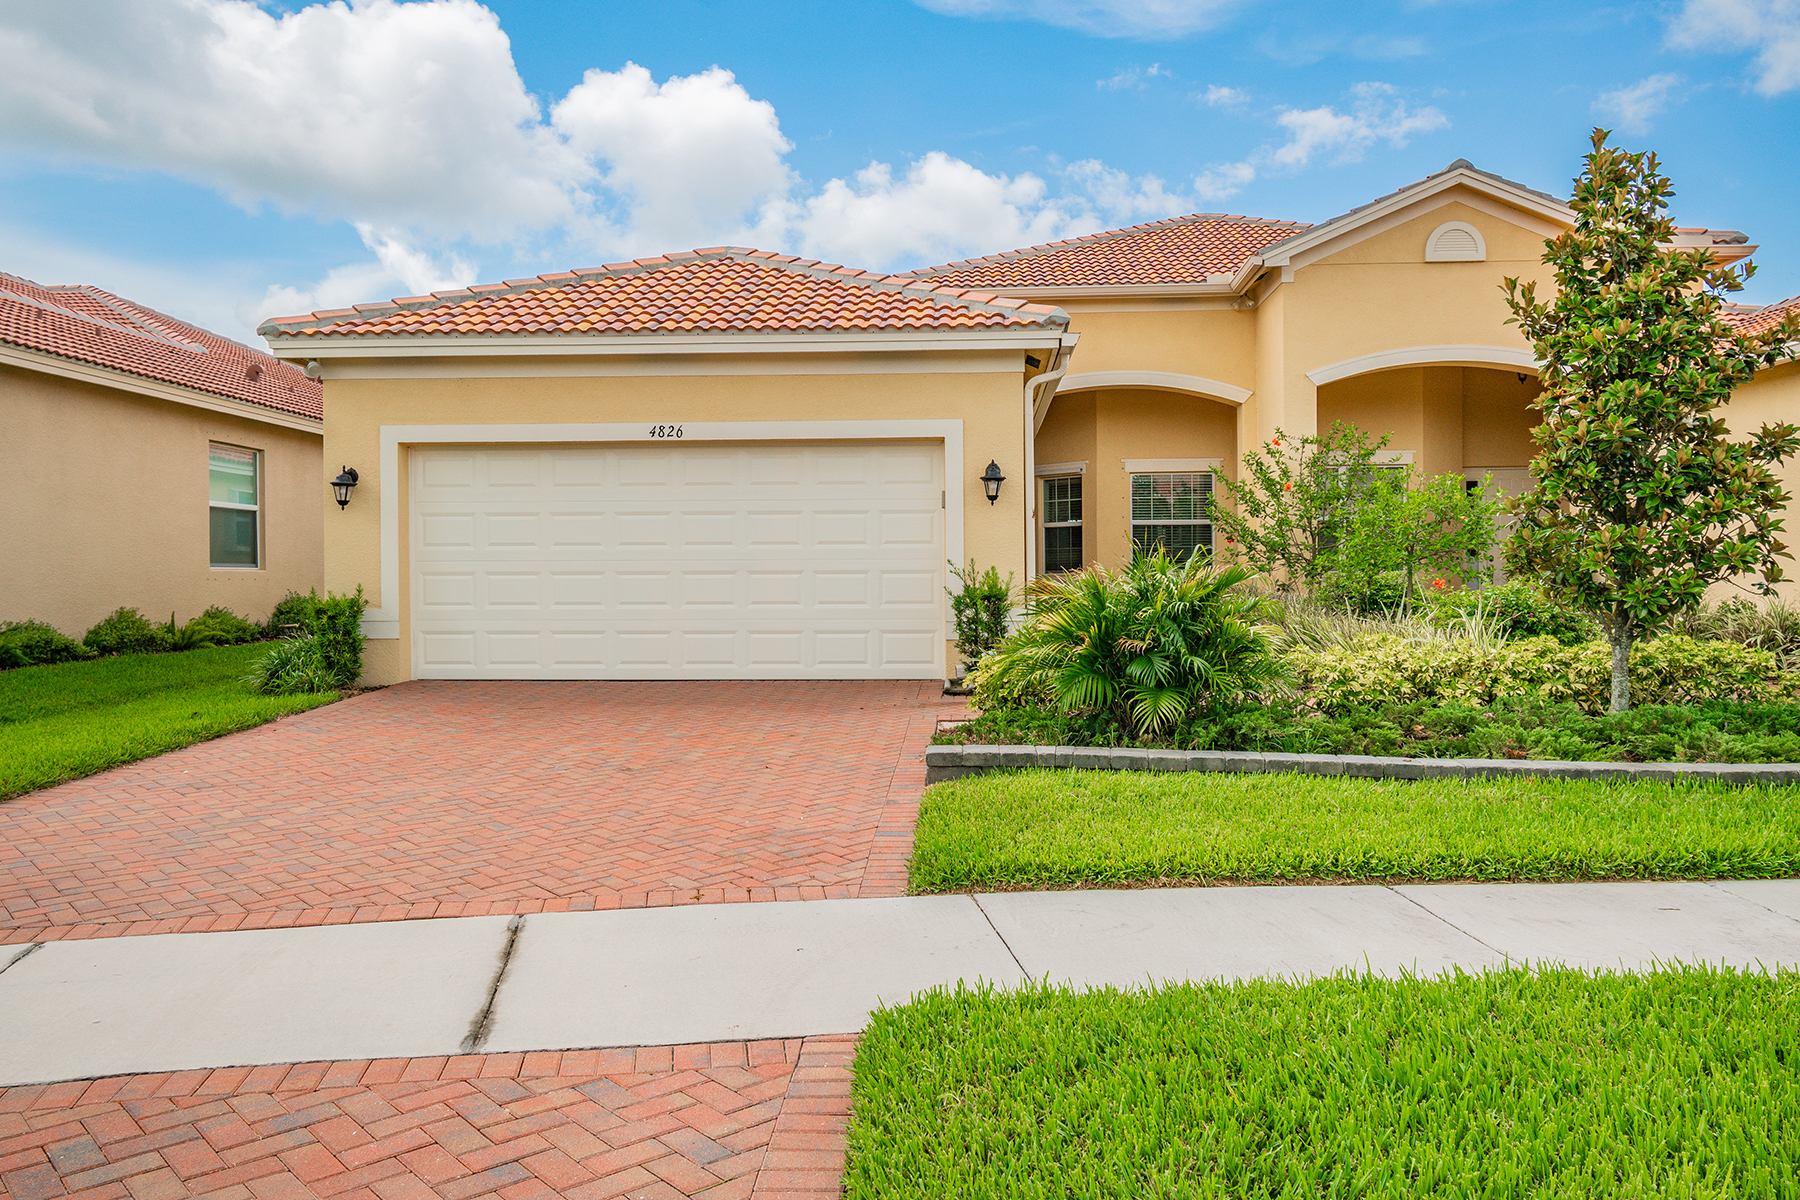 single family homes for Active at VALENCIA LAKES 4826 Marble Springs Cir Wimauma, Florida 33598 United States